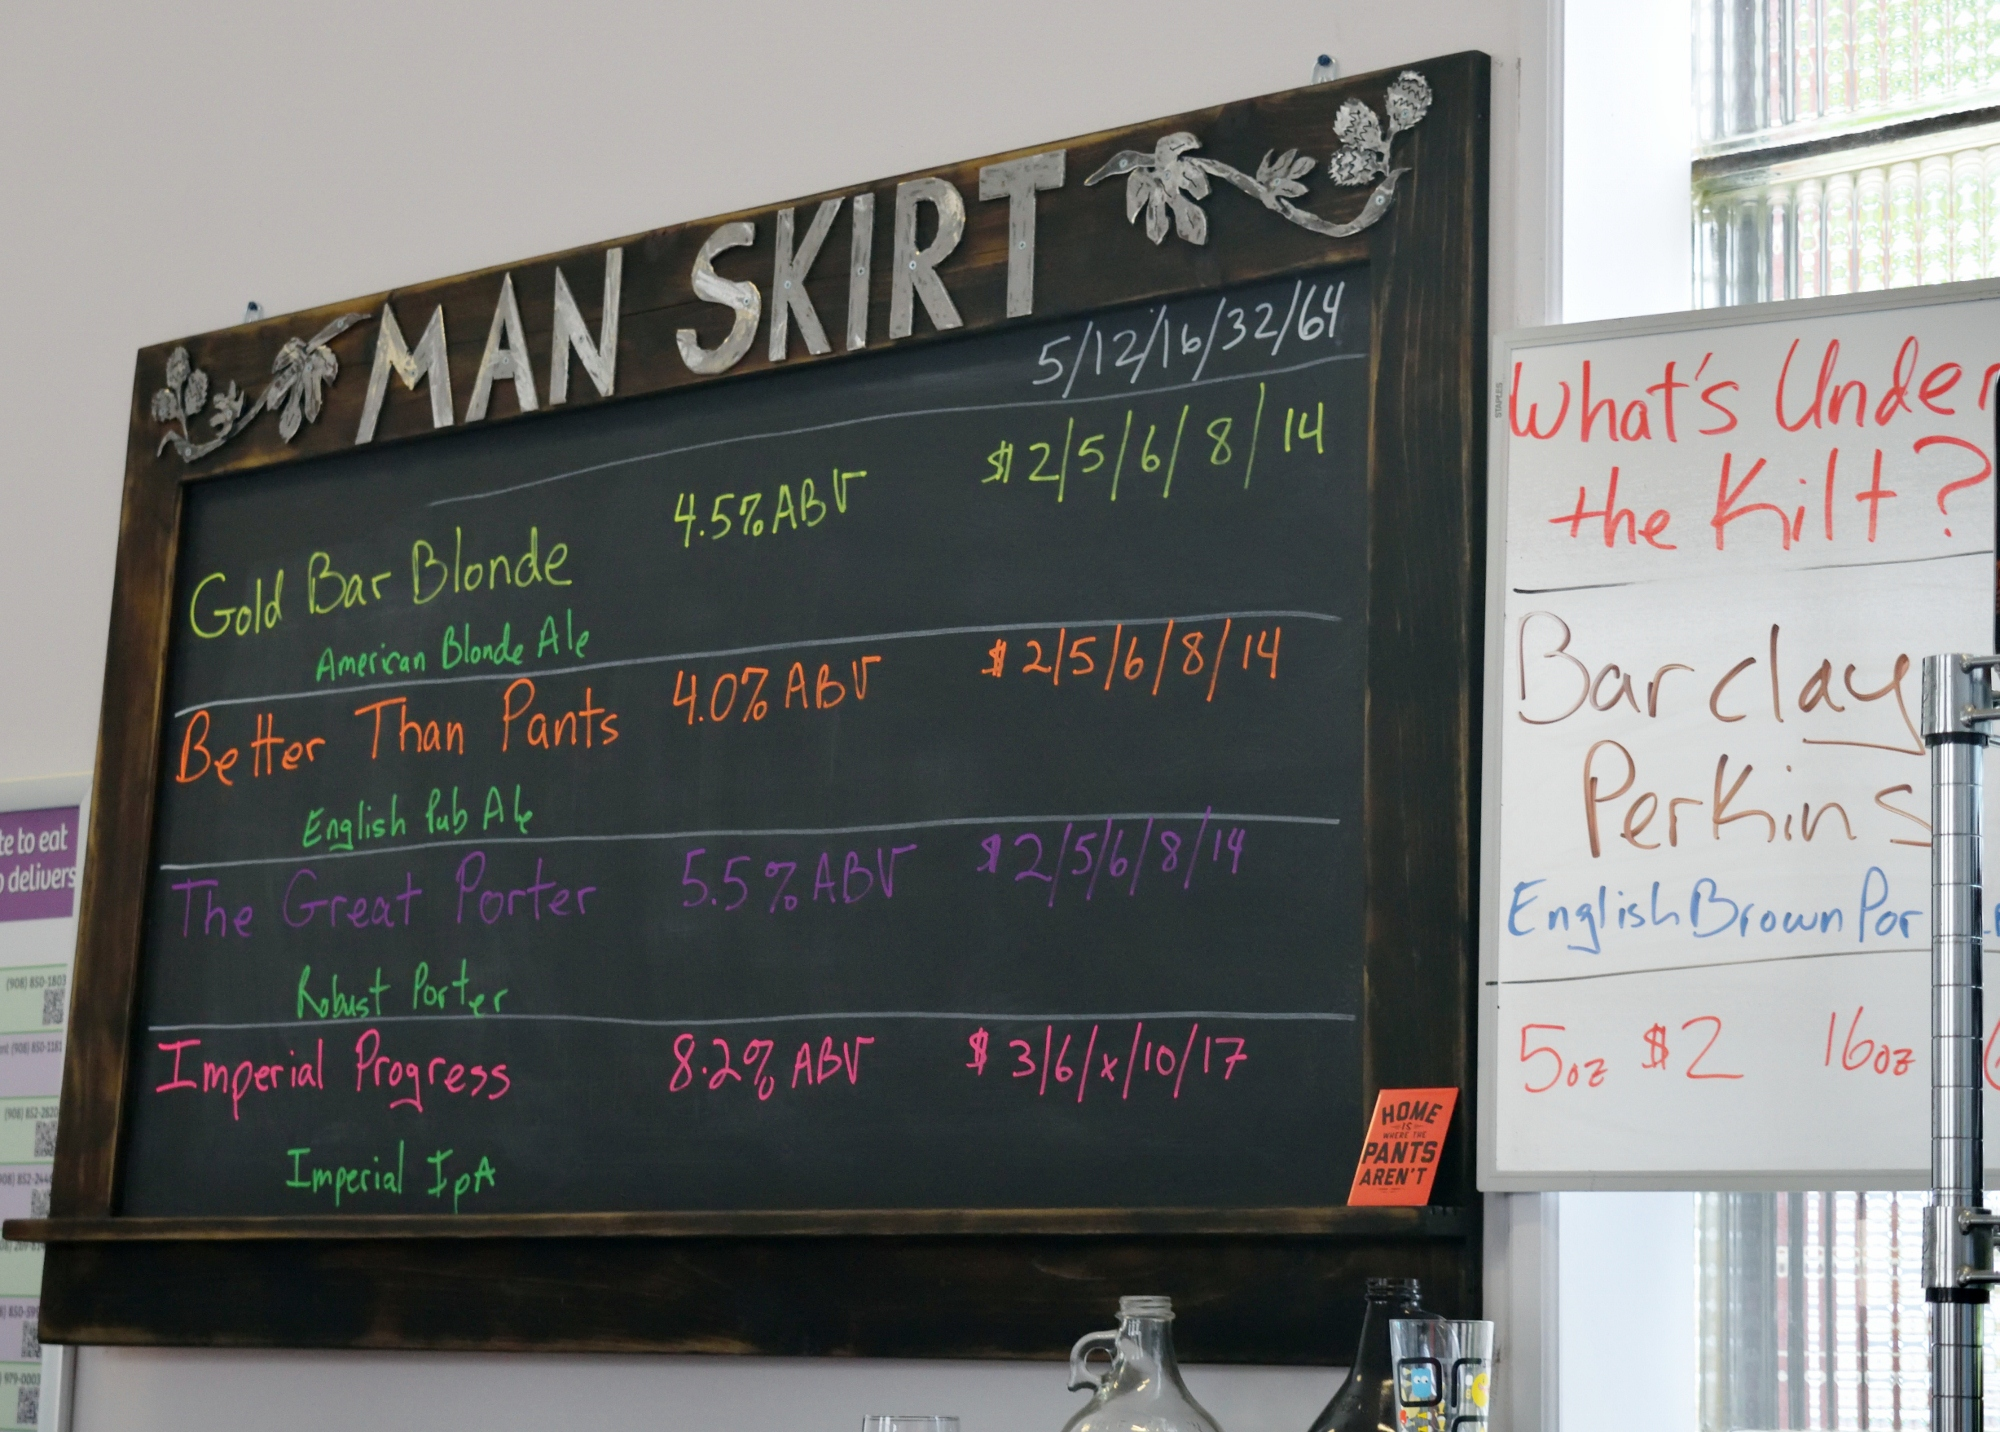 Five beers on tap this time around - two of these definitely shined above the rest.